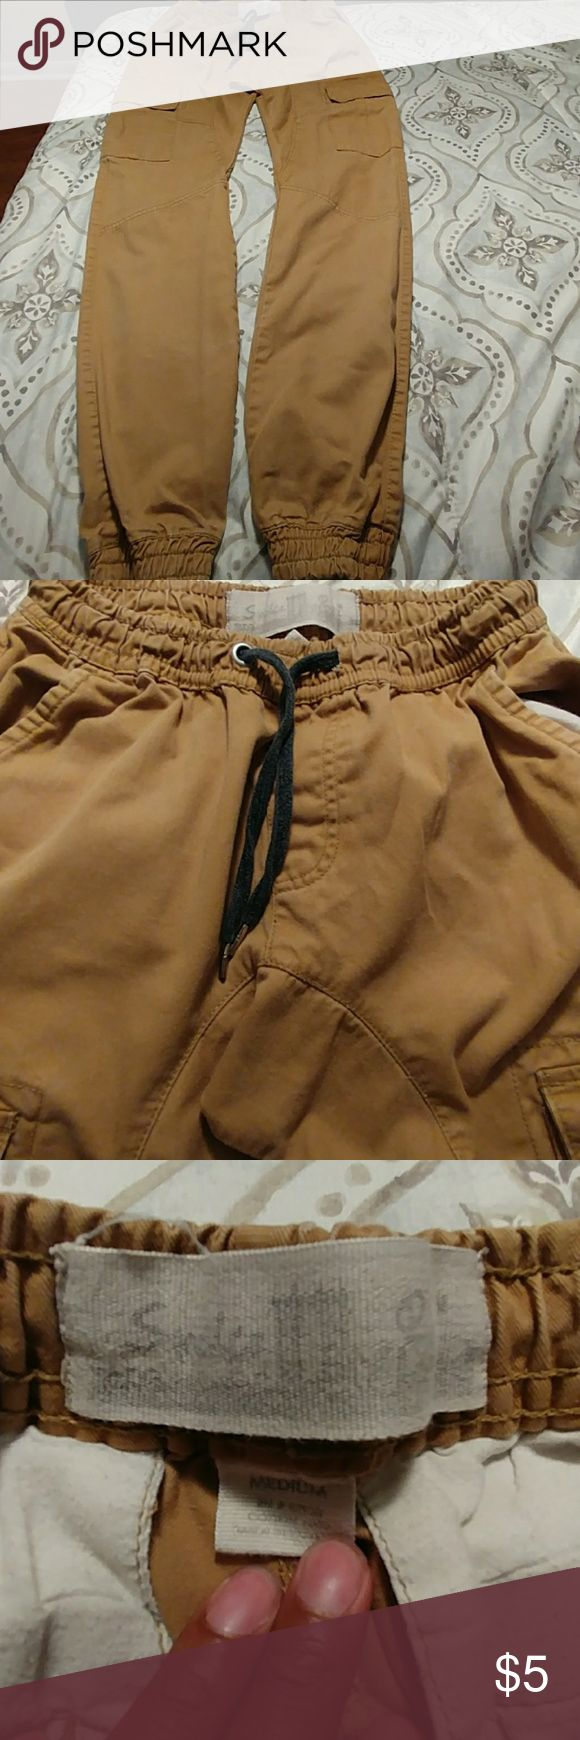 Men's Jogger Pants Men's Jogger Pants. Size Medium. Used Condition. Missing Snap On One Pocket And Small Spots As Shown In Pictures 4 & 5. Pictures 2-8 All Show Signs Of Wear. Pants Sweatpants & Joggers